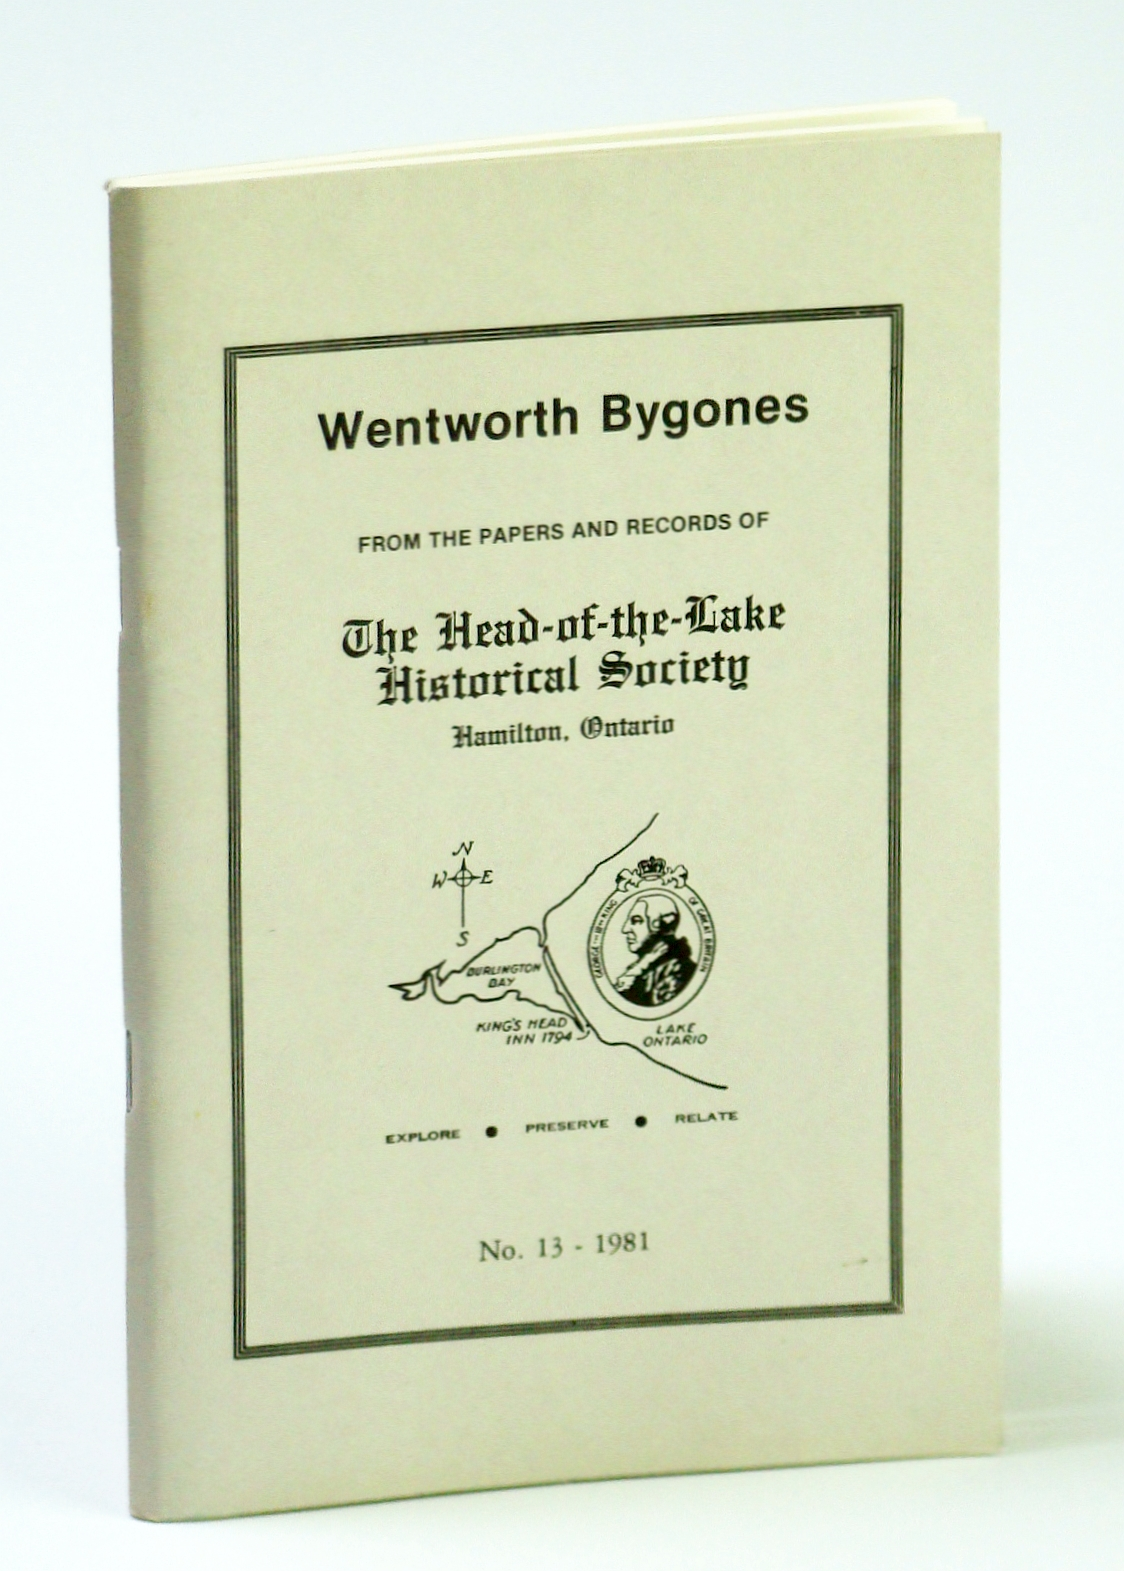 Image for Wentworth Bygones: From the Papers and Records of The Head-of-the-Lake Historical Society, No. 13 (Thirteen) 1981